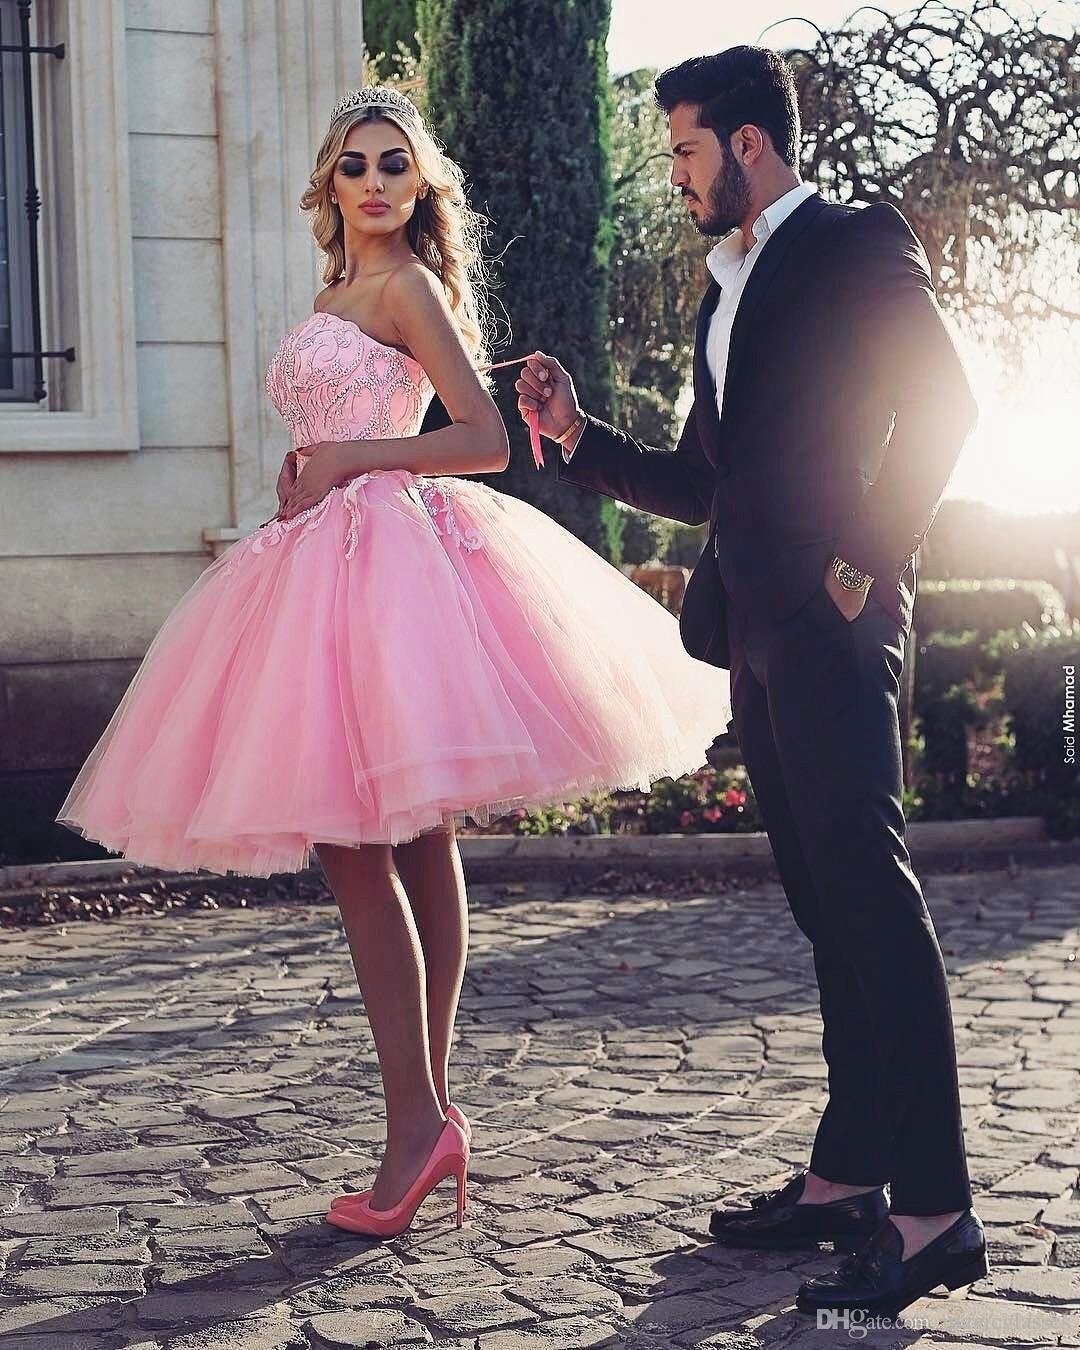 Pink Knee-Length Prom Dress Stylish Strapless Beaded Lace Appliques Pretty Cocktail Party Dress Puffy Tulle Short Lovely Evening Gowns